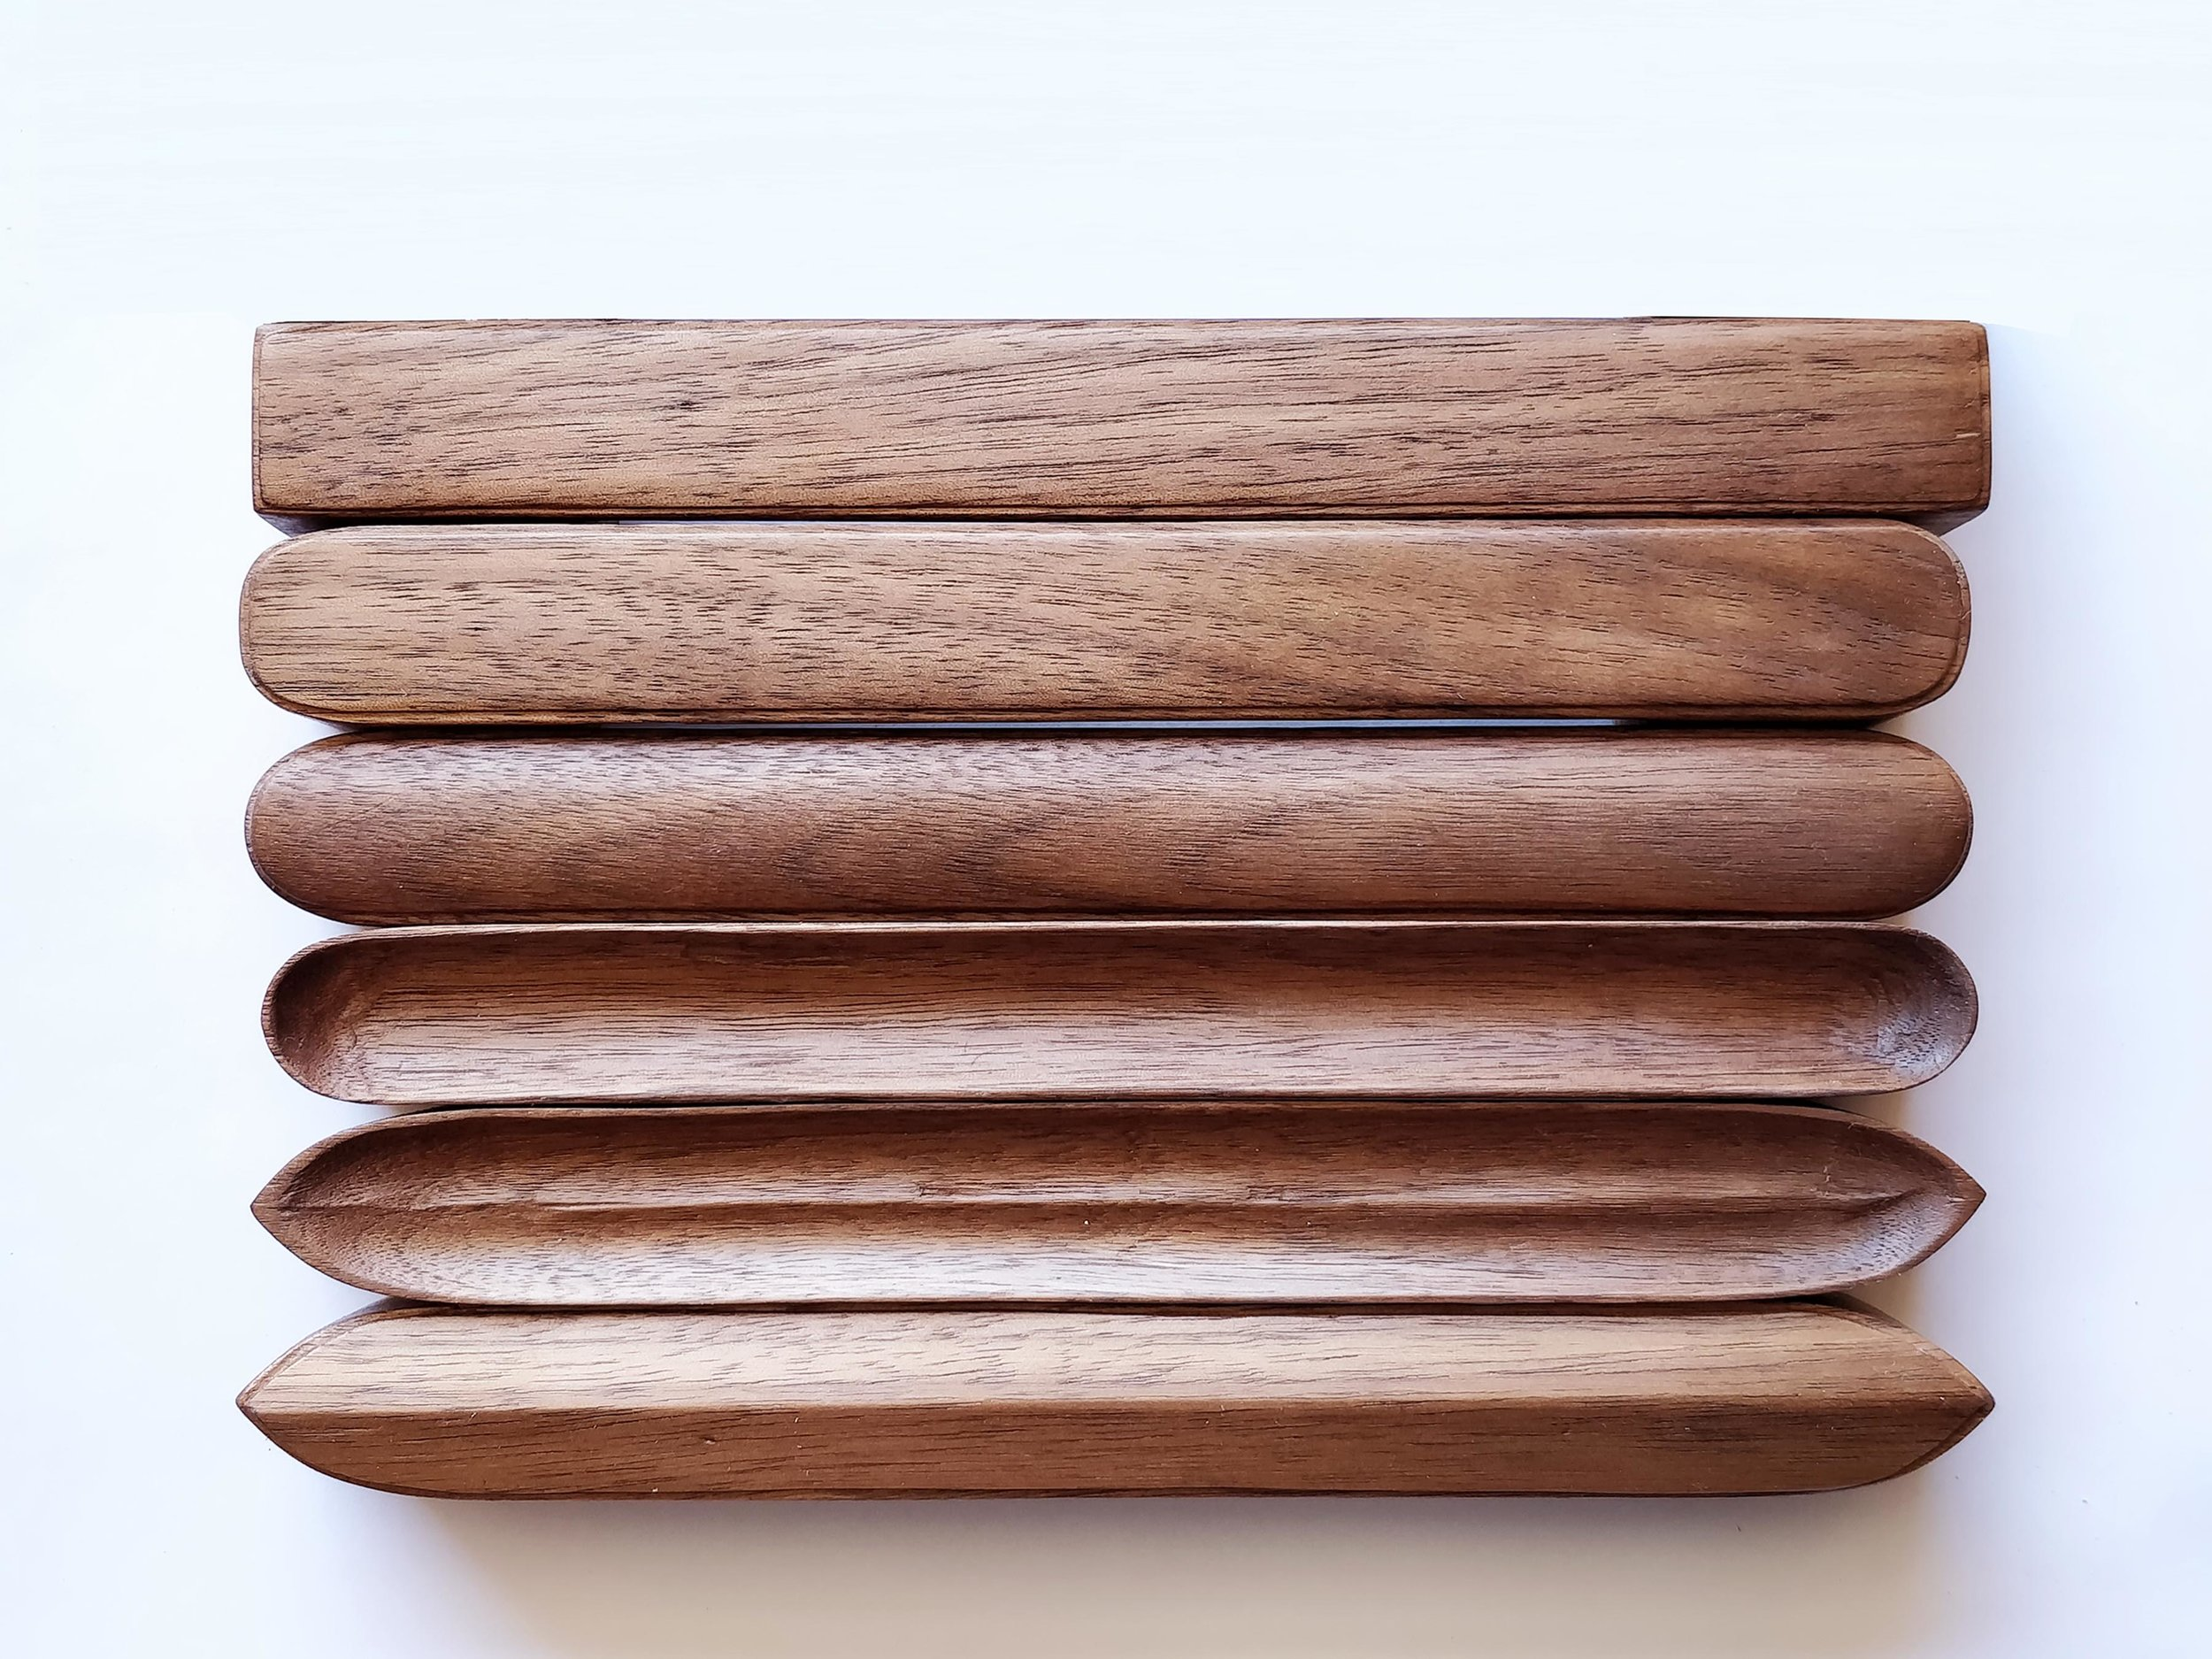 """Hand-carved drawer pulls in walnut, 1""""x8"""". From Top to Bottom:  Block, Pebble, Mound, Dish, Husk, Hull."""